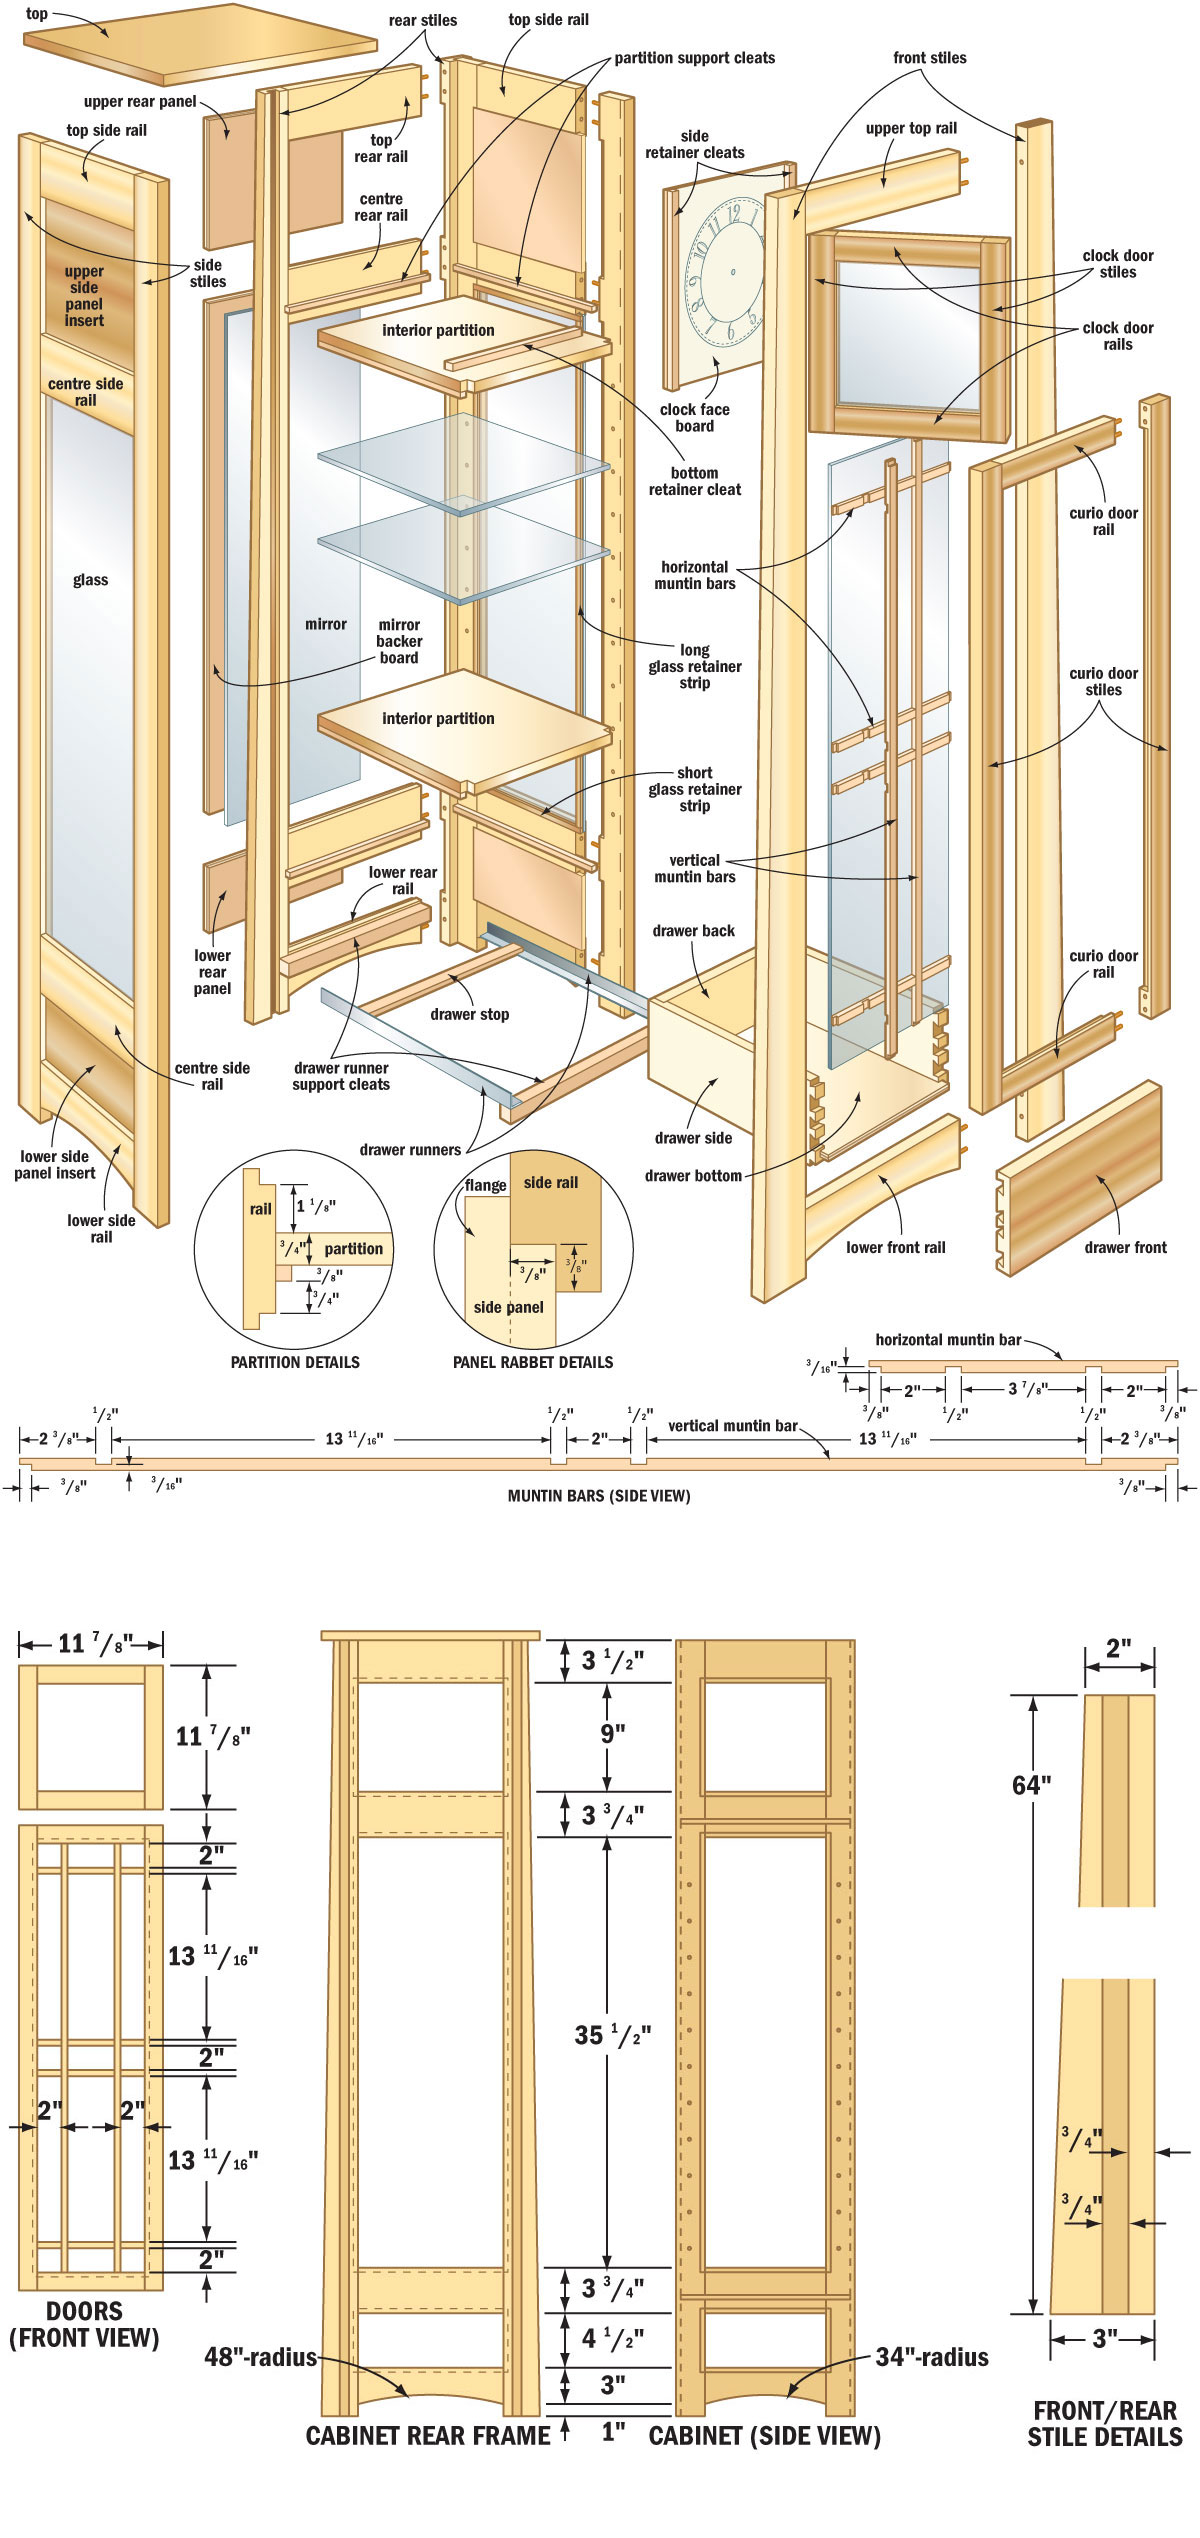 Curio cabinet plans shelves plans to build pdf download Cabinets plans